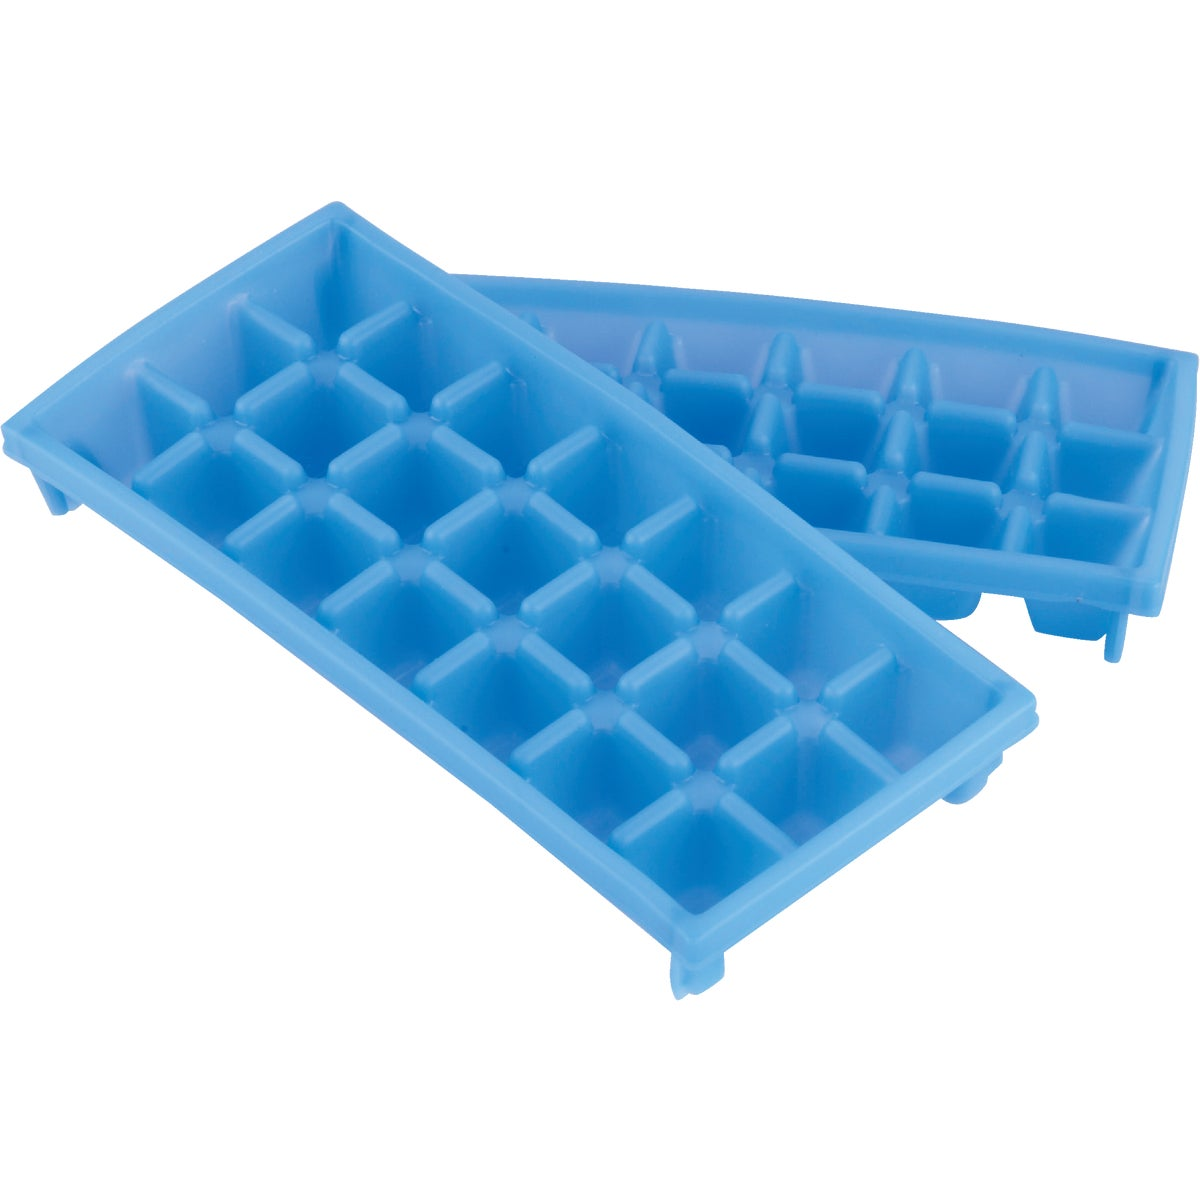 2 PK MINI ICE CUBE TRAYS